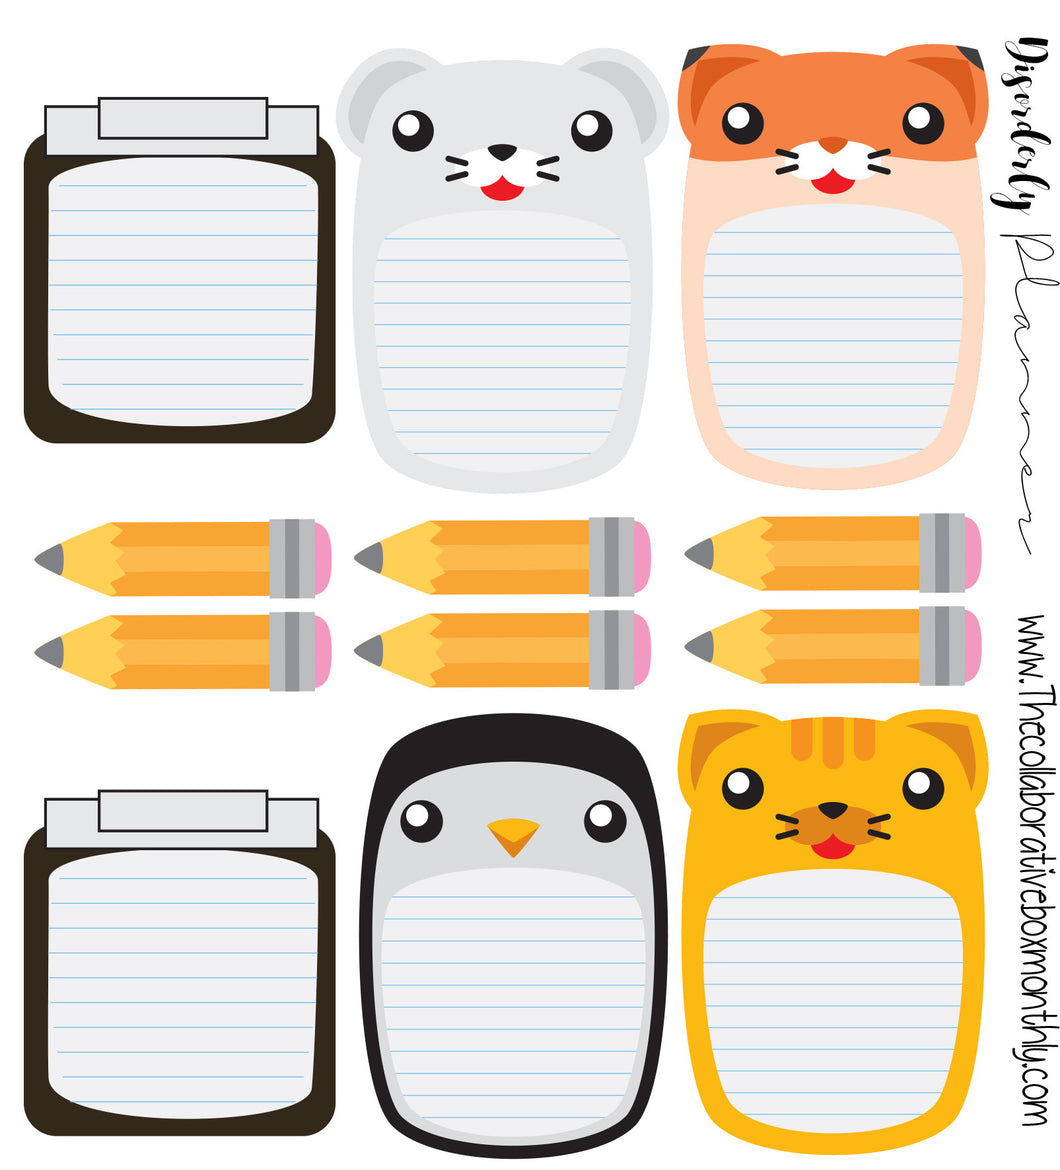 Disorderly Planner Mini Notebooks Planner Kit - Planner stickers - Functional Sticker Kit -